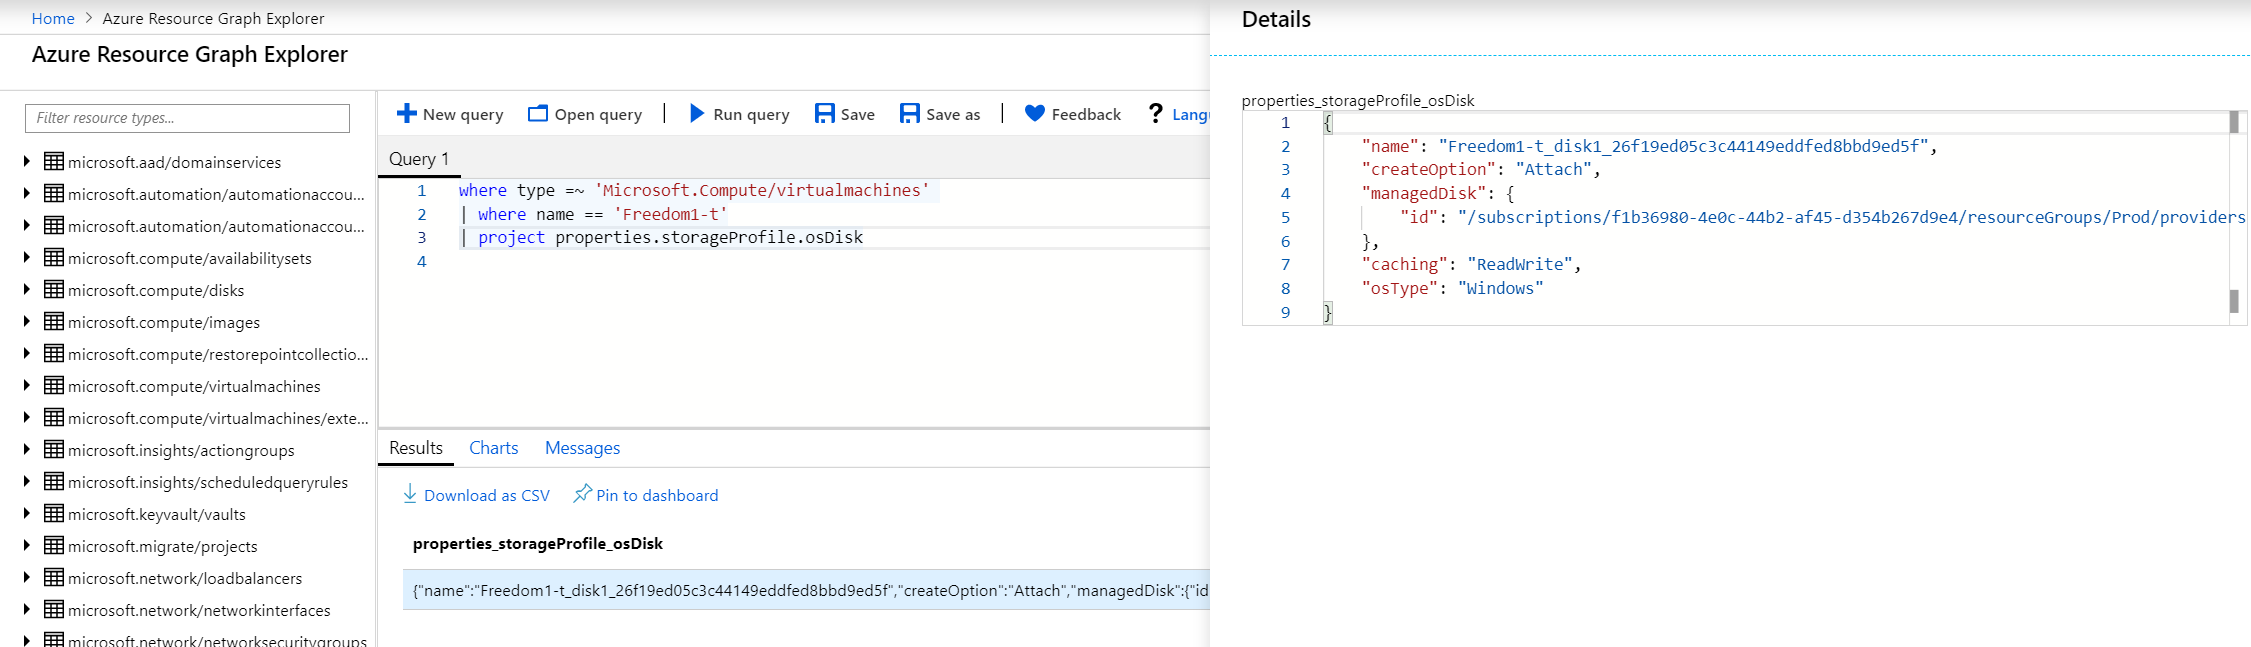 Azure Resource Graph missing some properties of VM objects